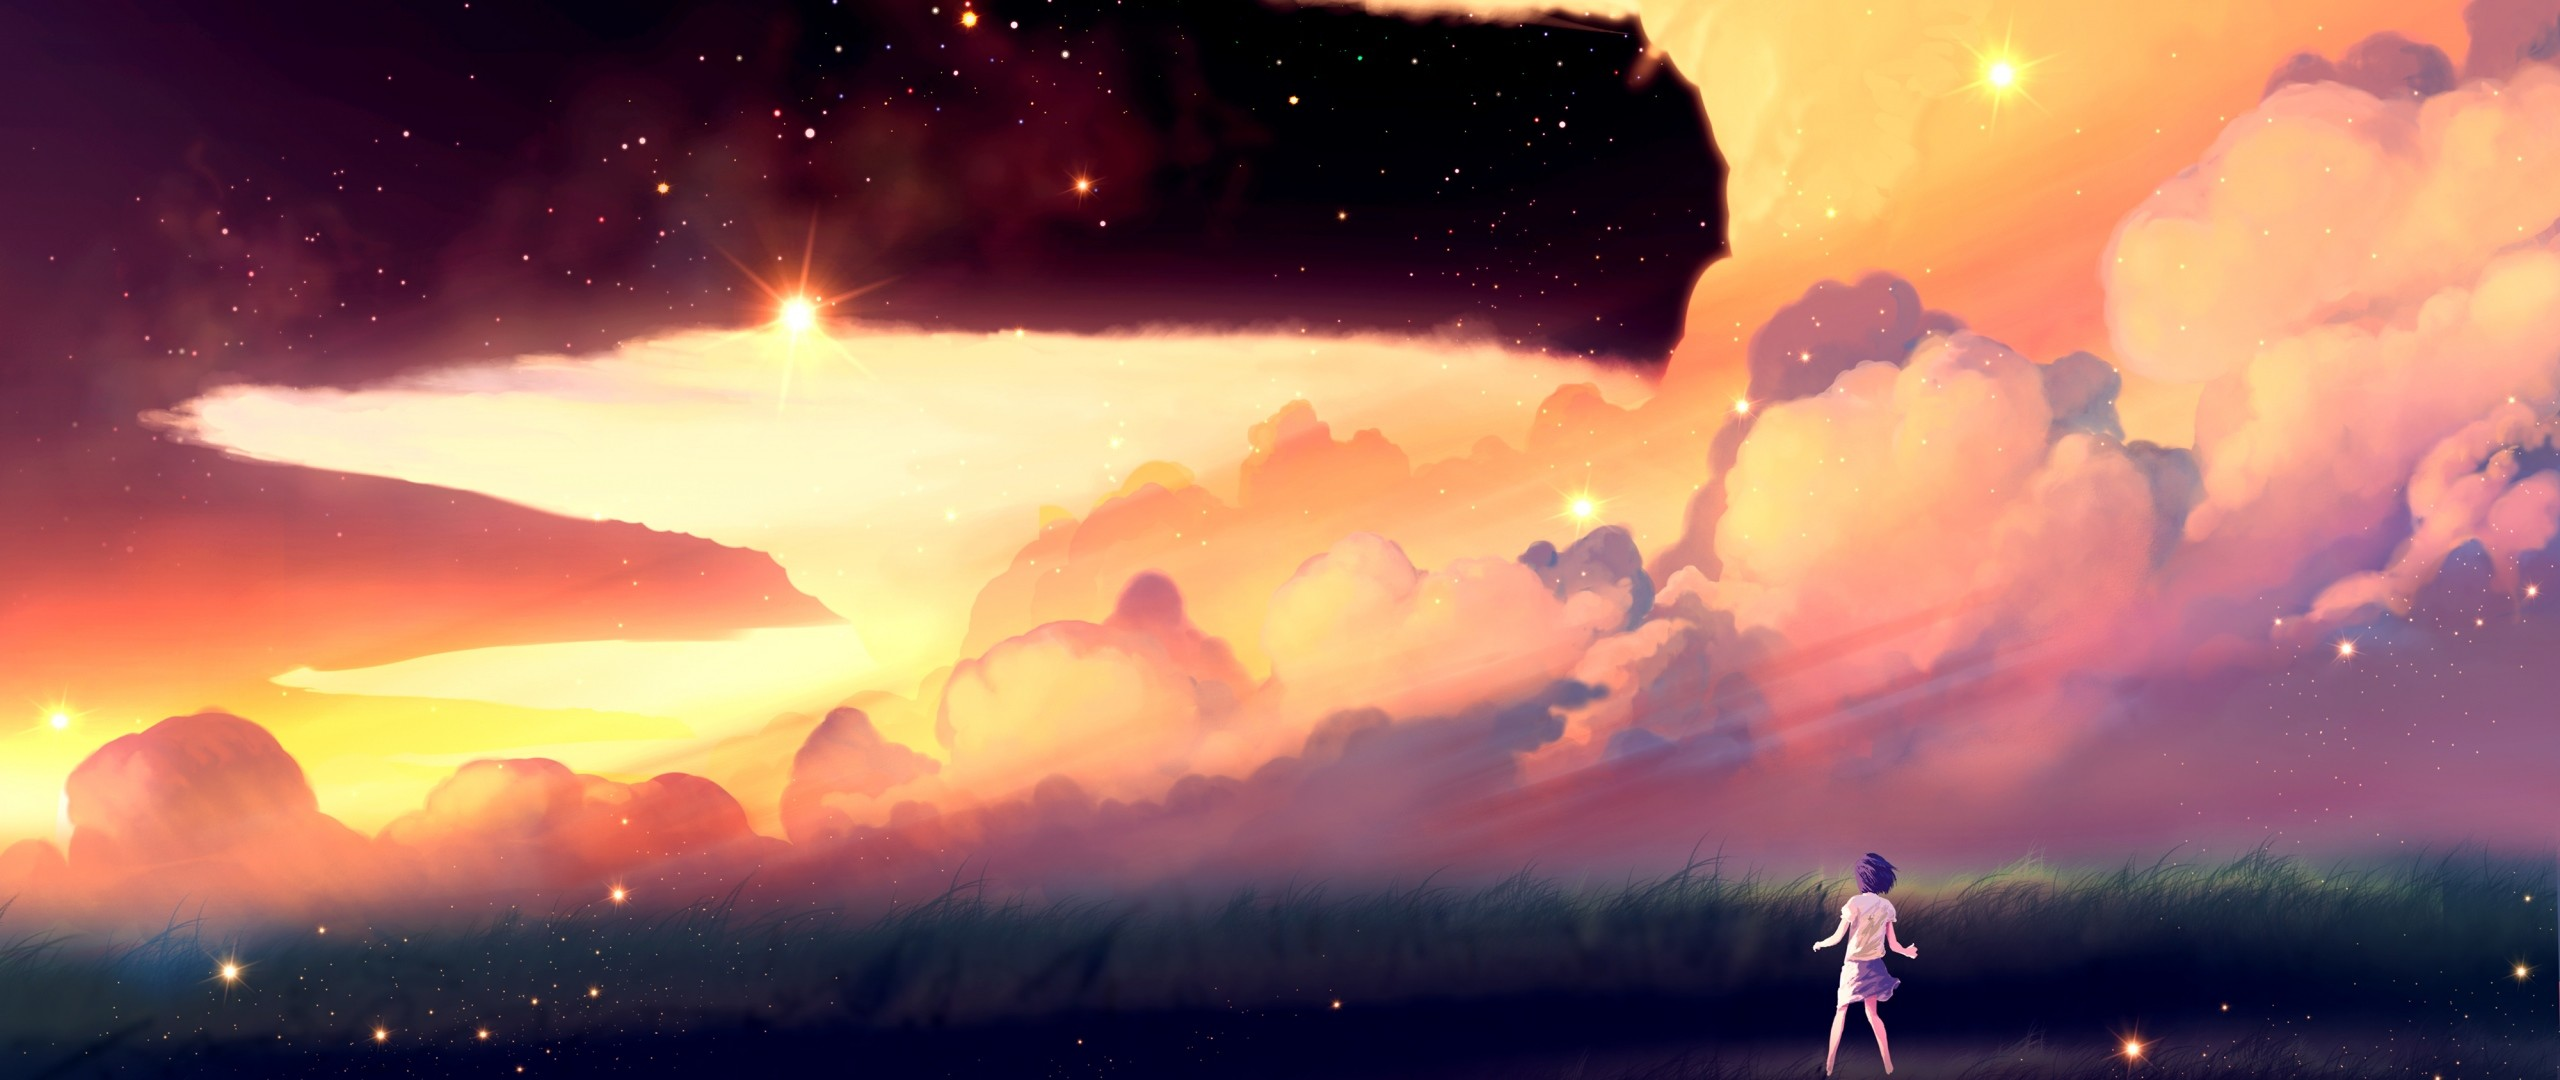 Res: 2560x1080, HD Quality Images of  Anime » #232145384